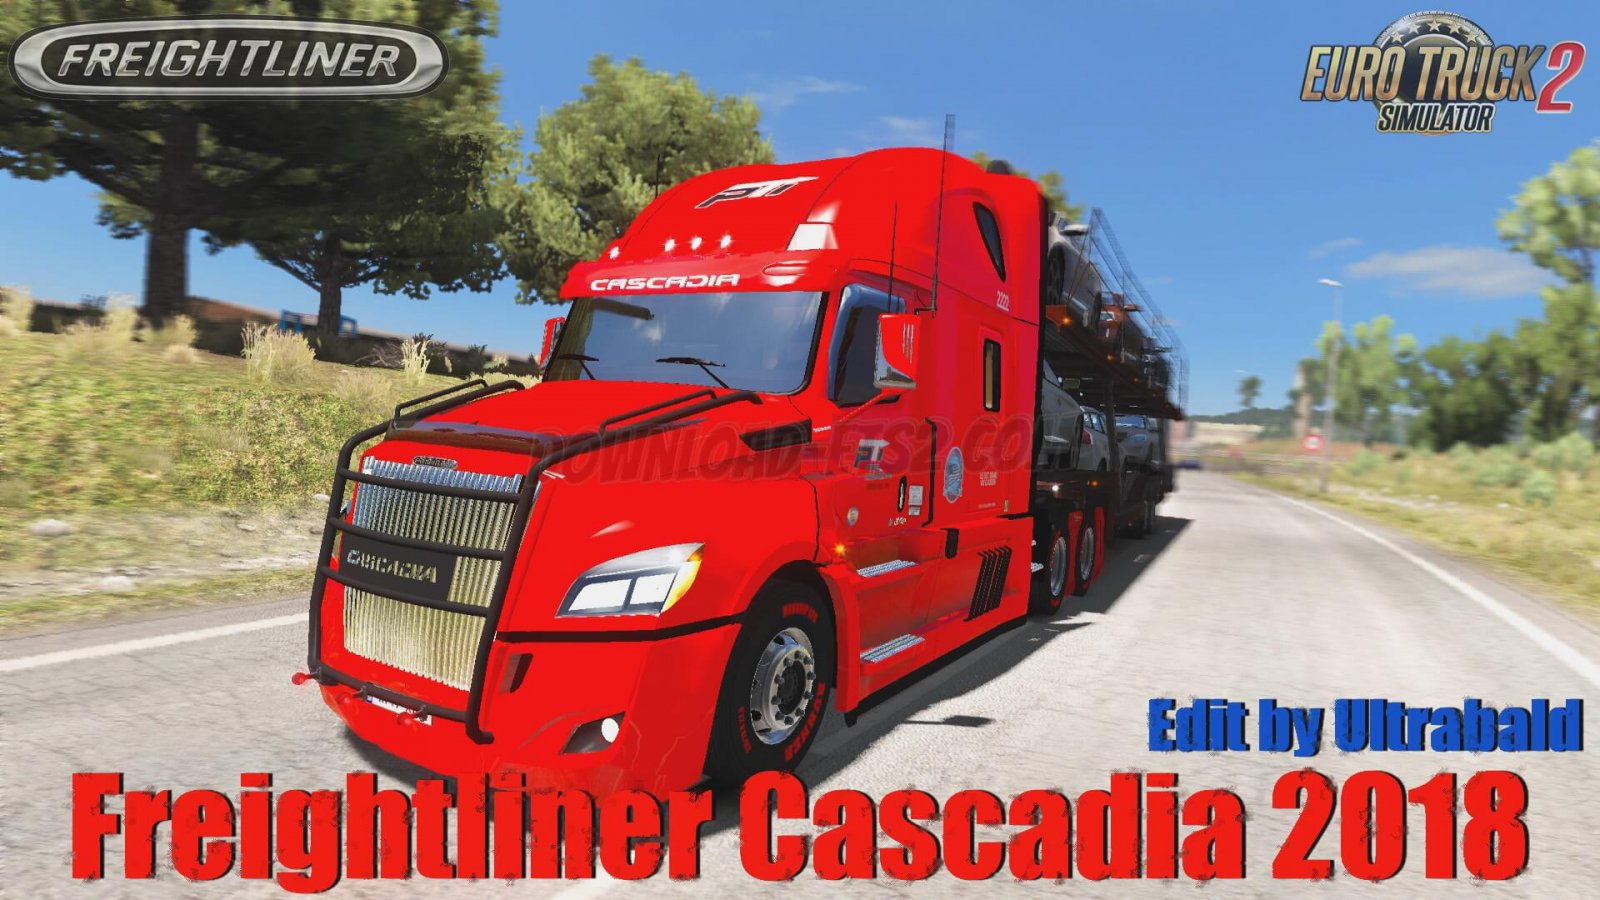 Freightliner Cascadia 2018 v1.6.1 Edit By Ultrabald (1.34.x)